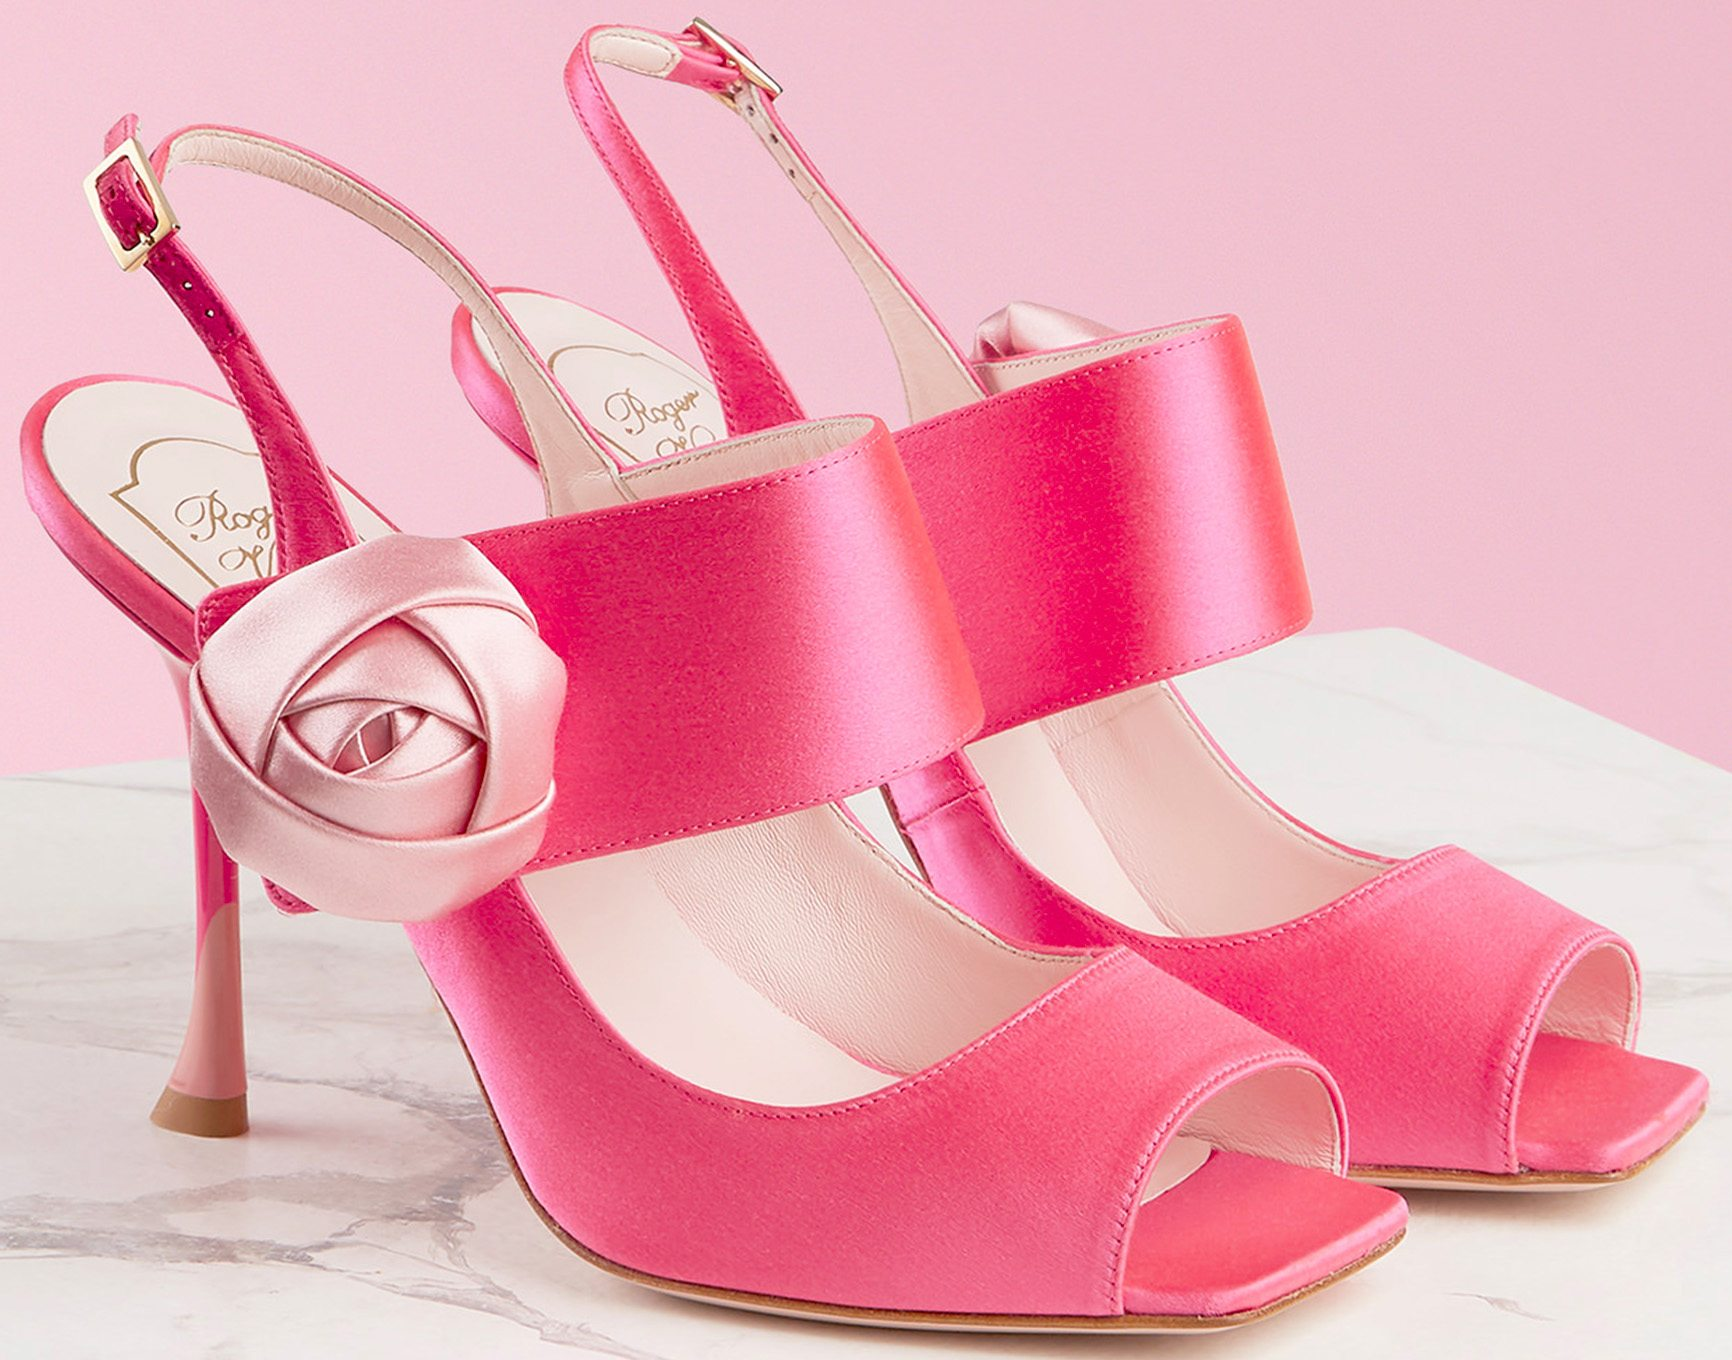 Rose Button Sandals by Roger Vivier